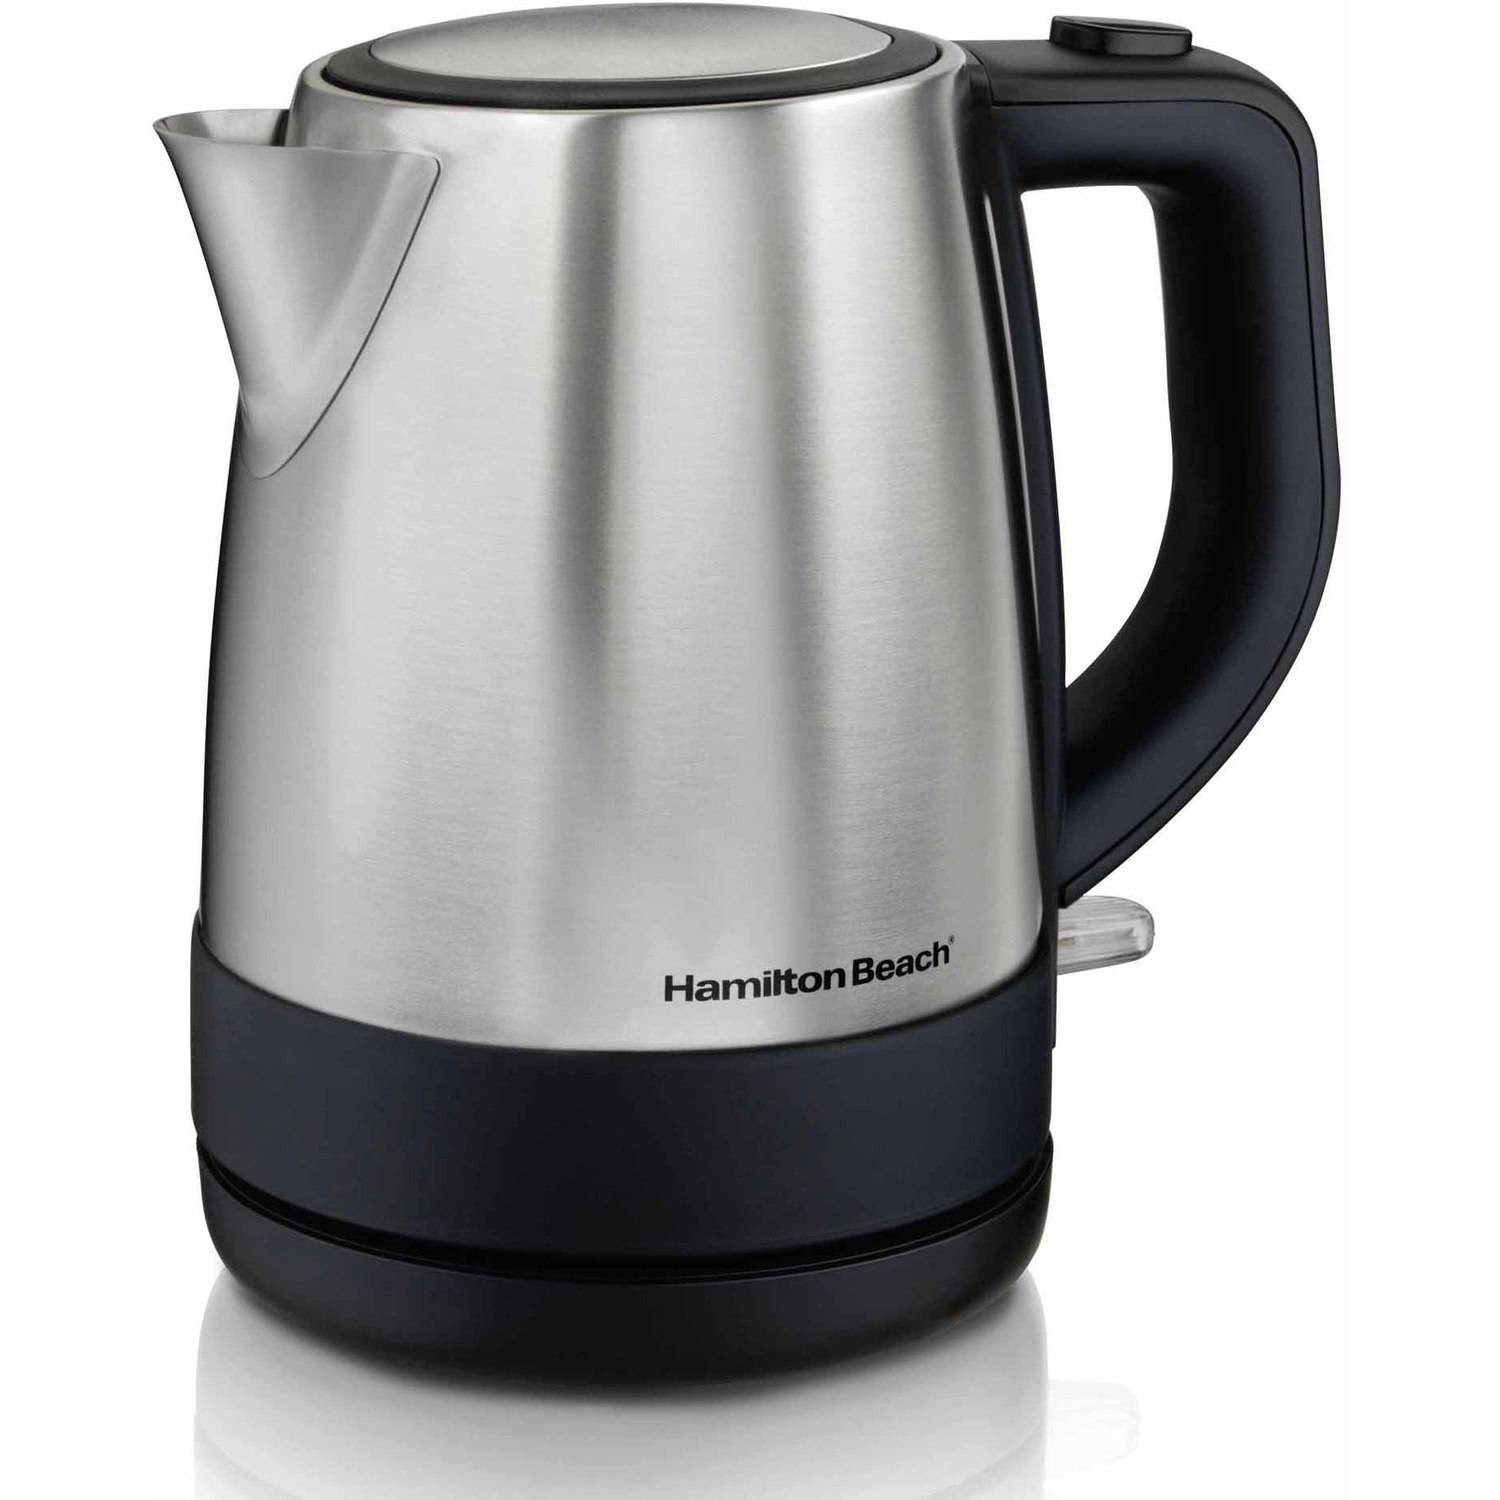 Hamilton Beach 1 L Stainless Steel Electric Kettle